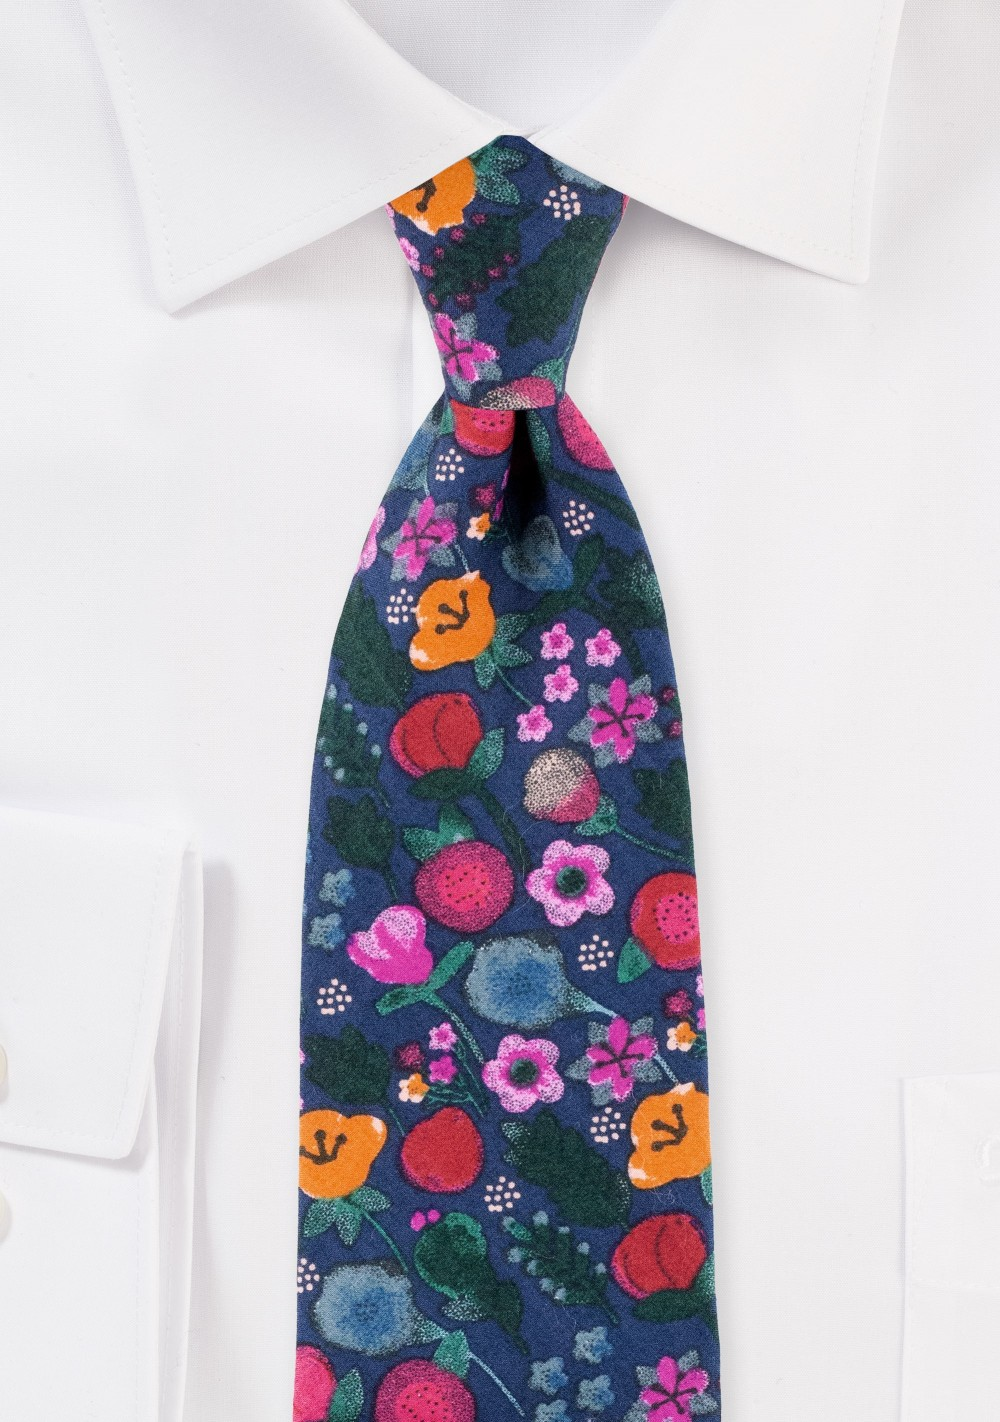 Colorful Floral Tie in Matte Printed Cotton